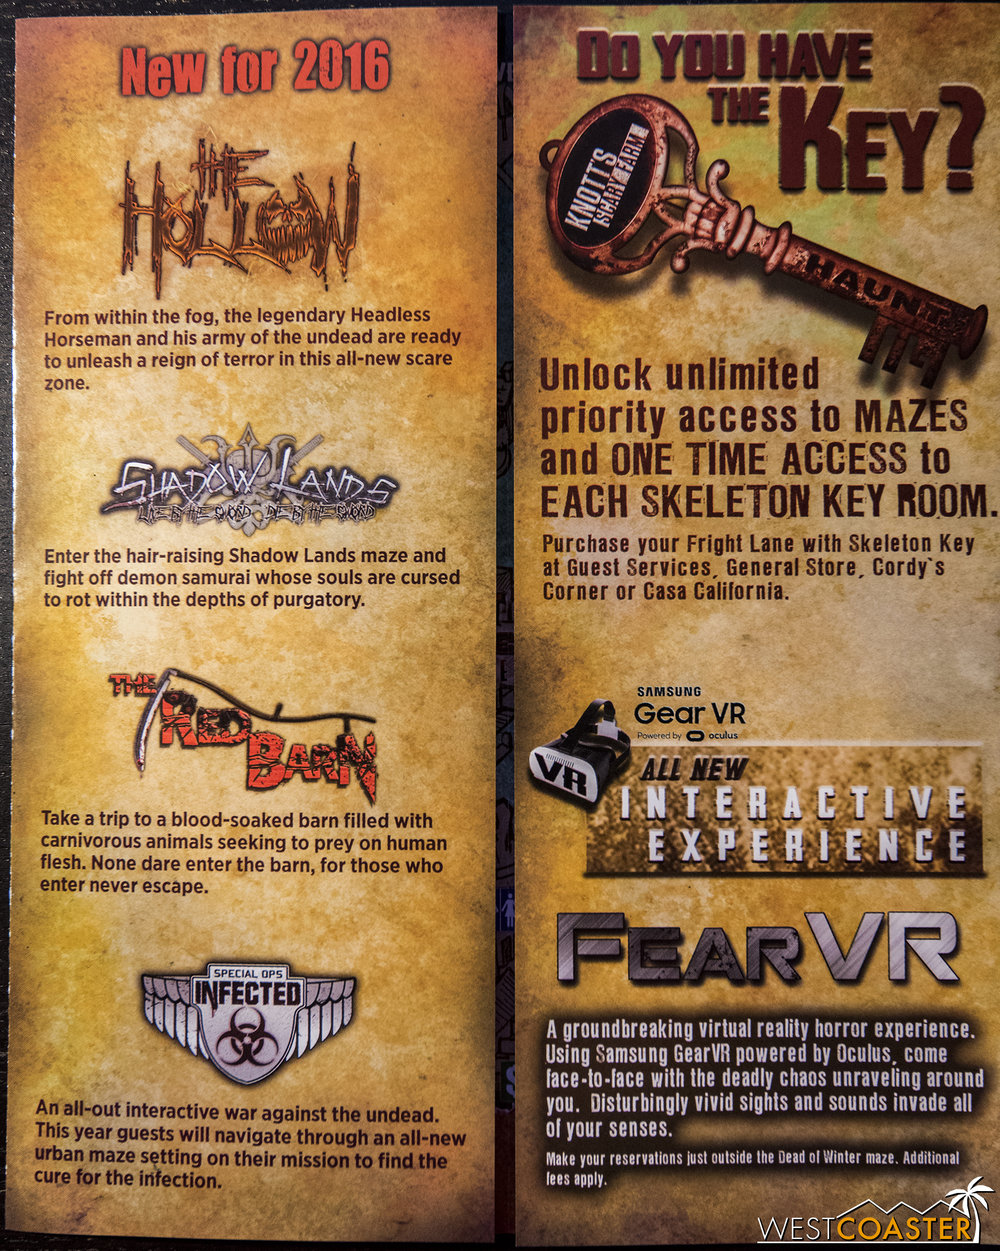 FearVR on the opening weekend Knott's Scary Farm map.